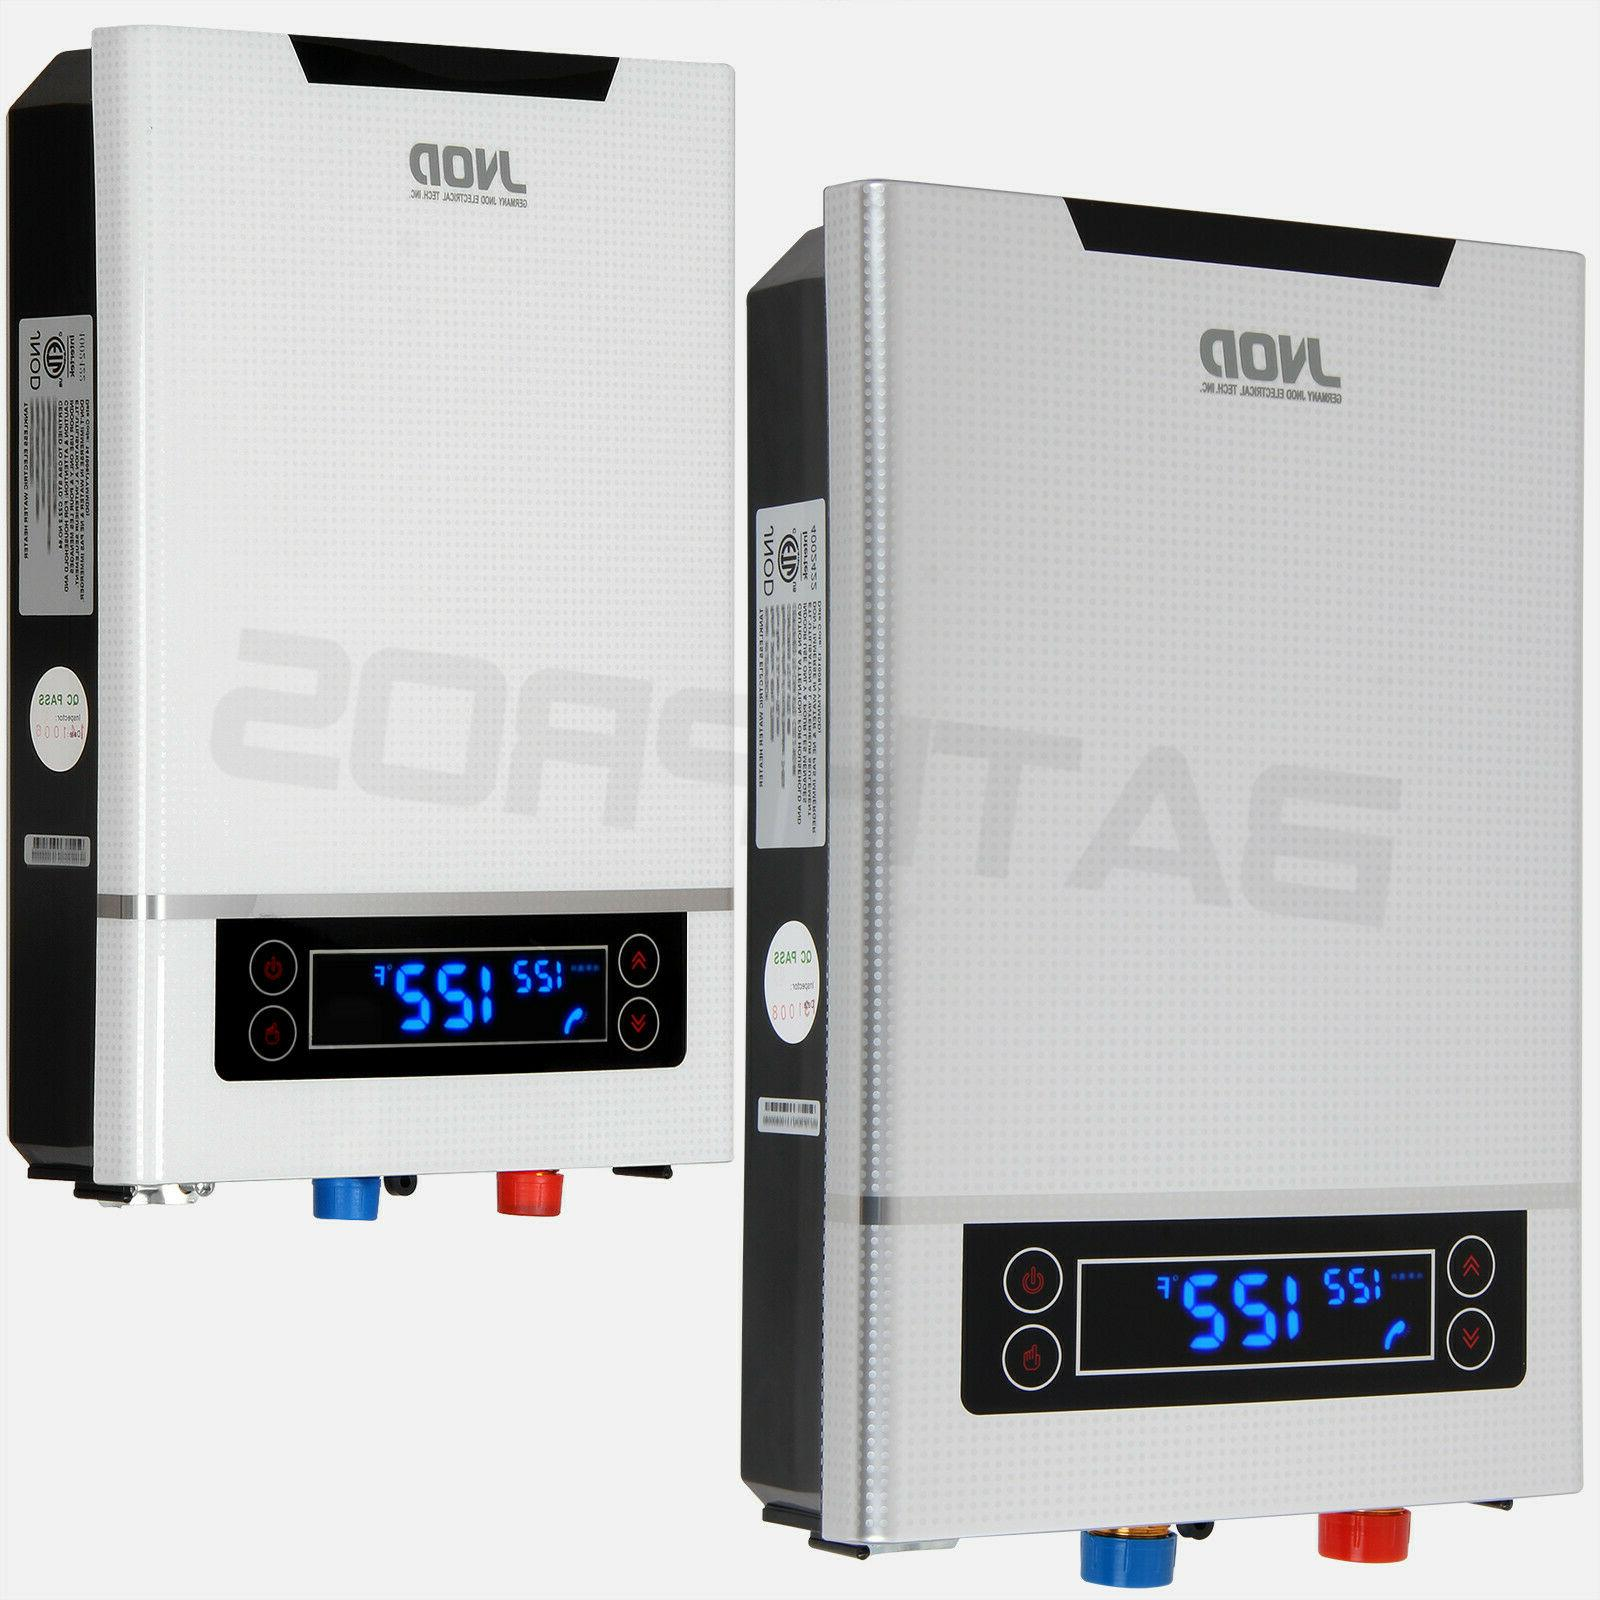 27kw fast heating electric tankless water heater